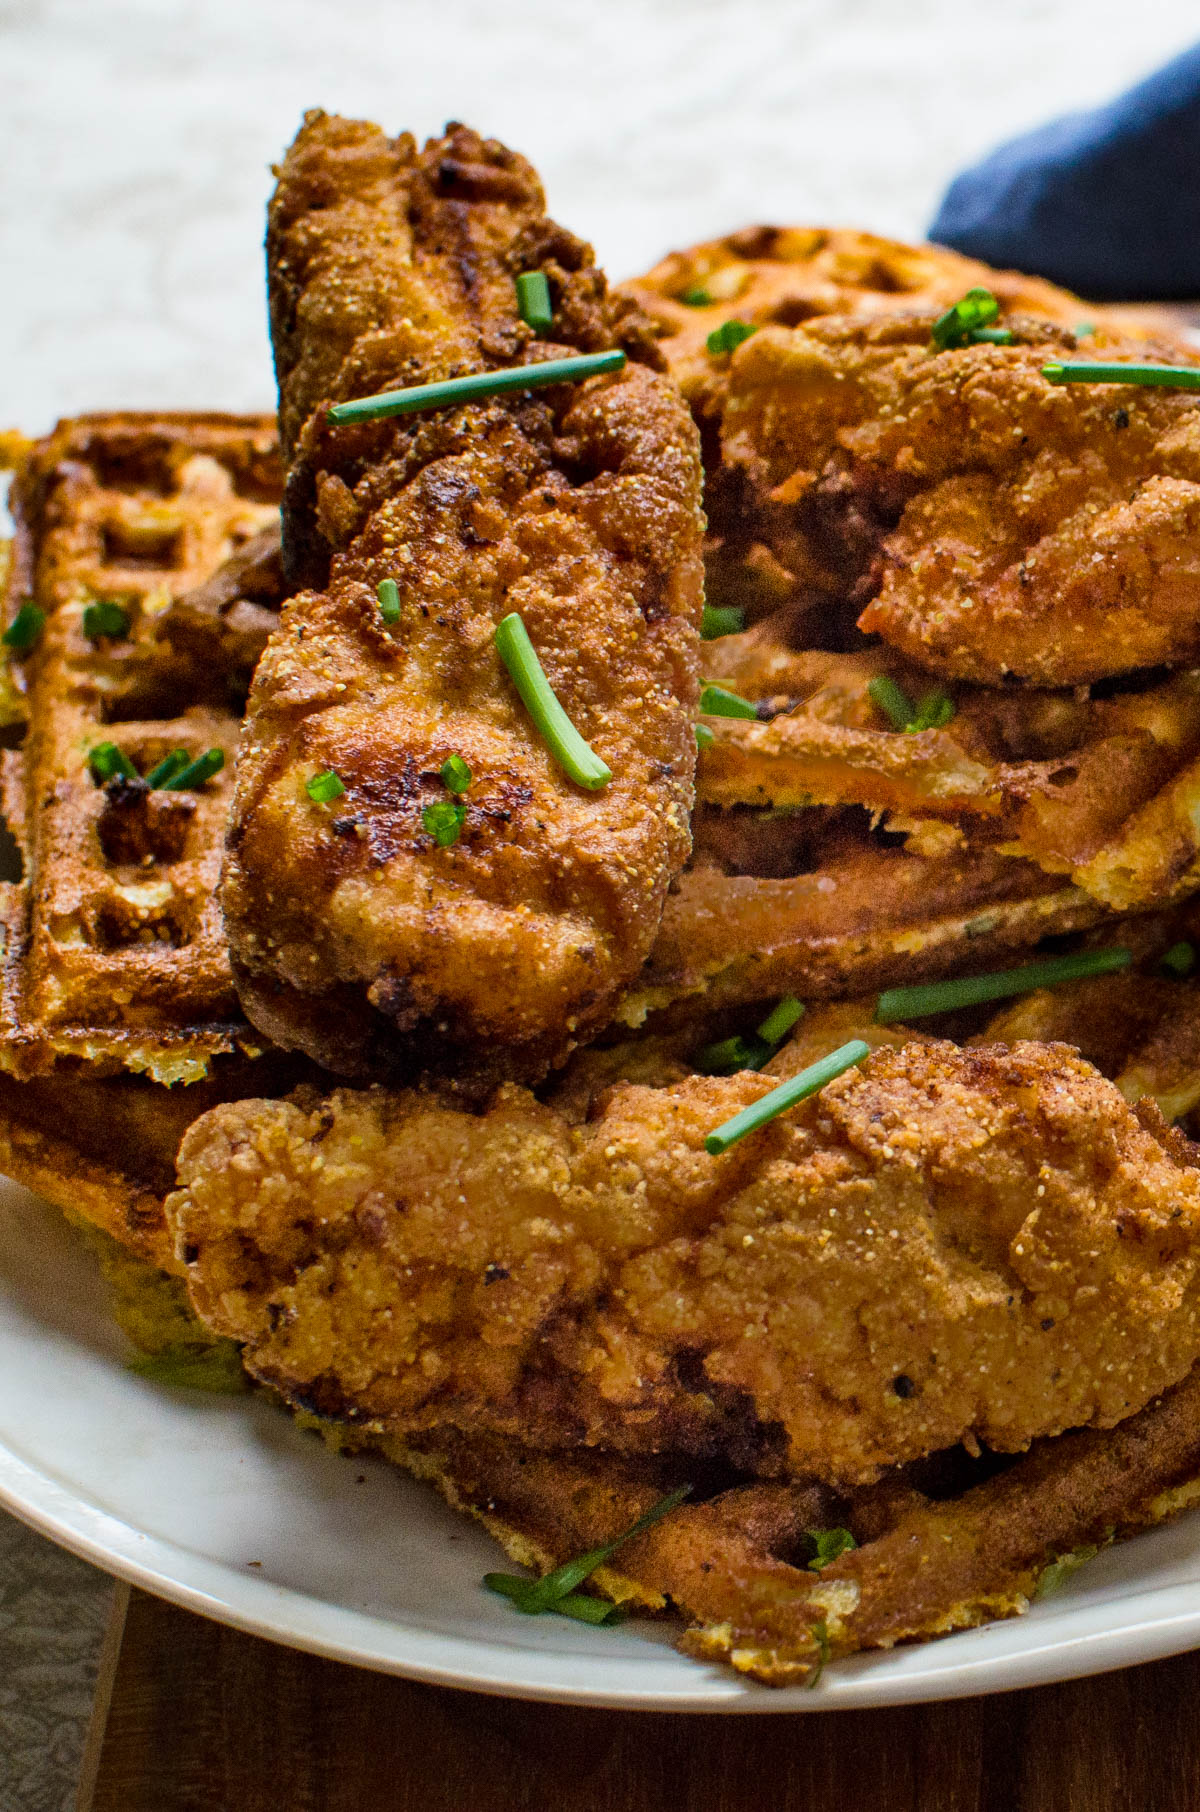 Southern-Style Chicken and Waffles